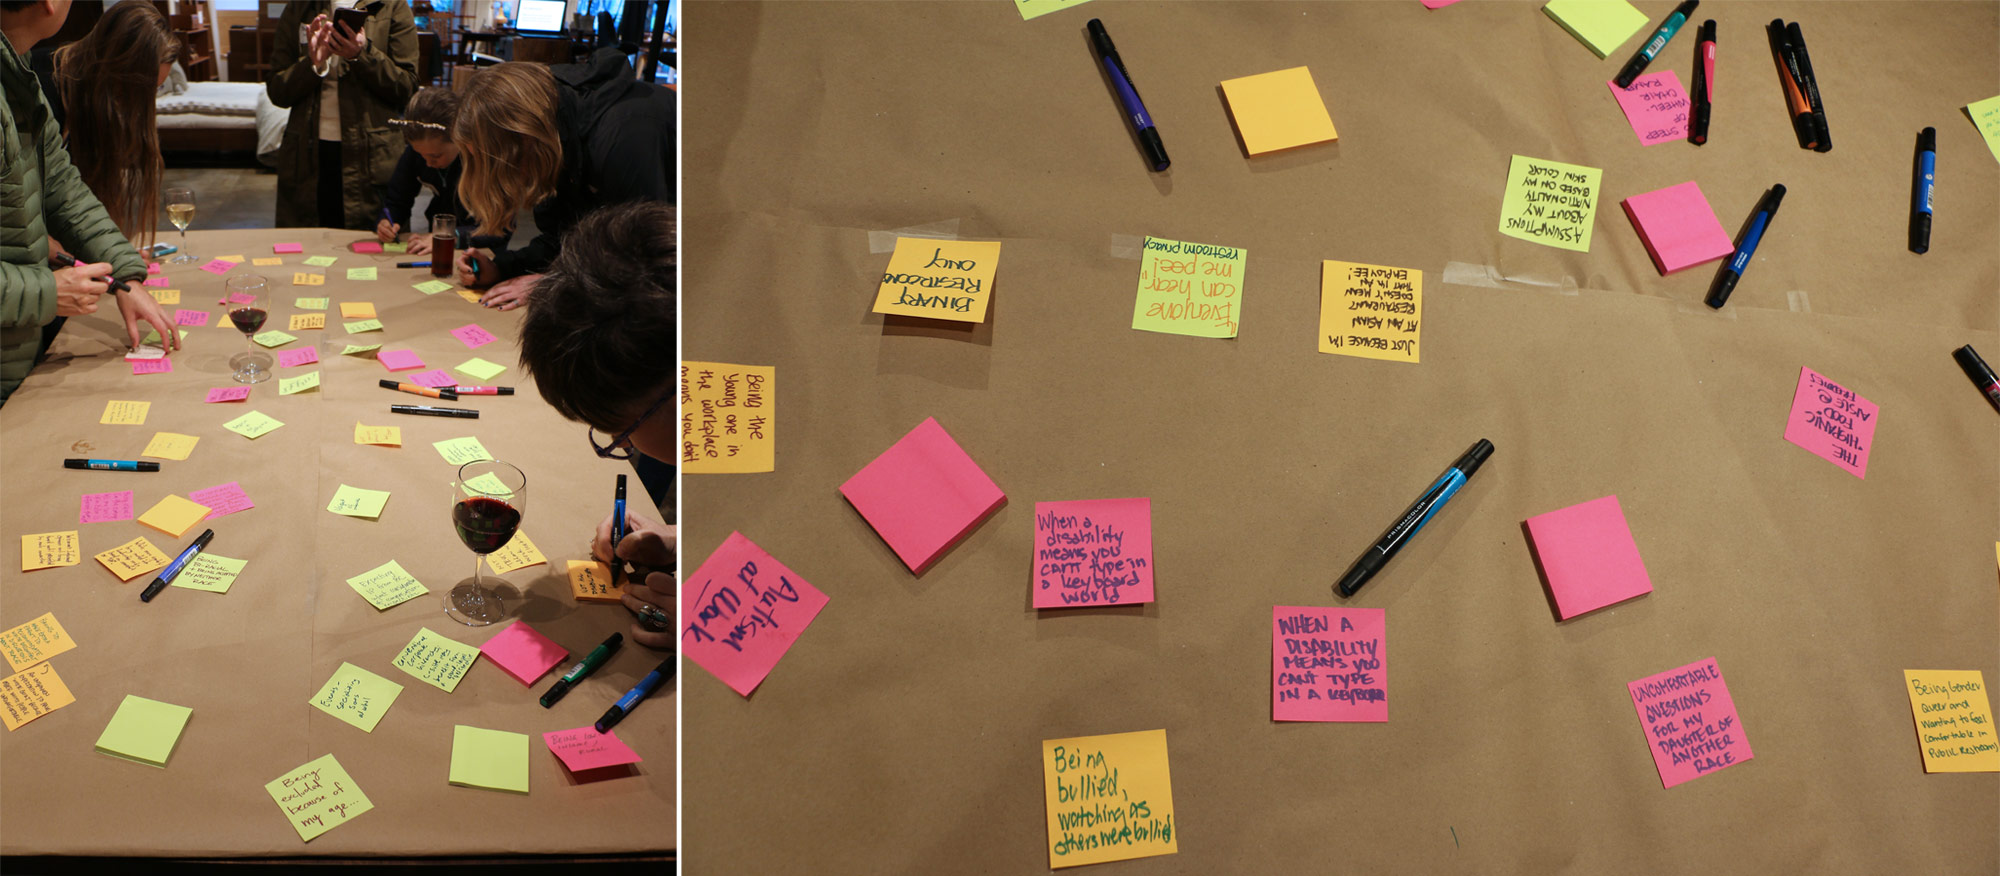 Event attendees writing barriers to inclusion on colorful stickie notes.